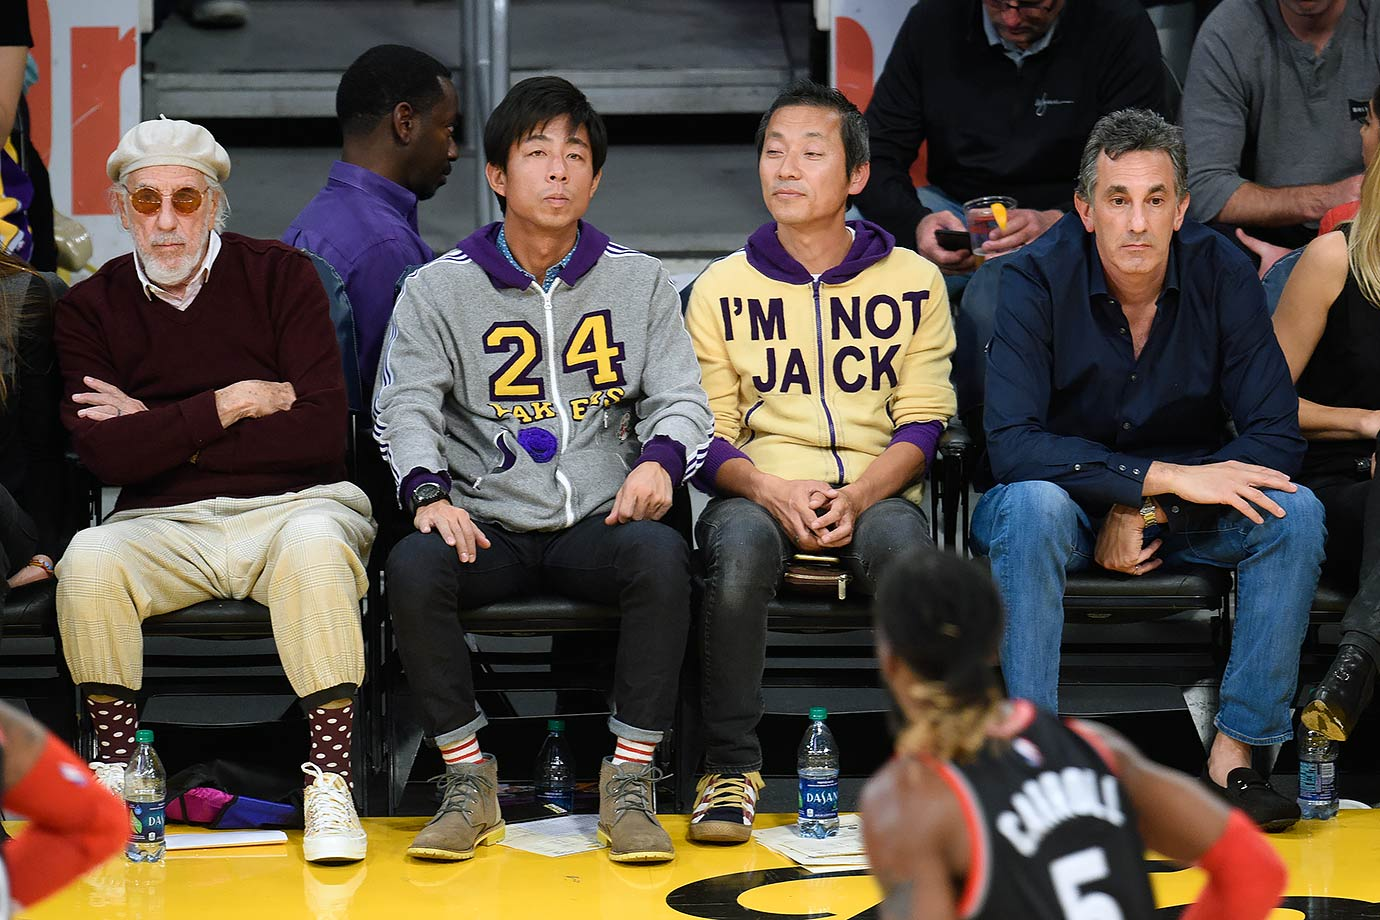 This Lakers fan sitting in Jack Nicholson's seat must've gotten tired of being asked.